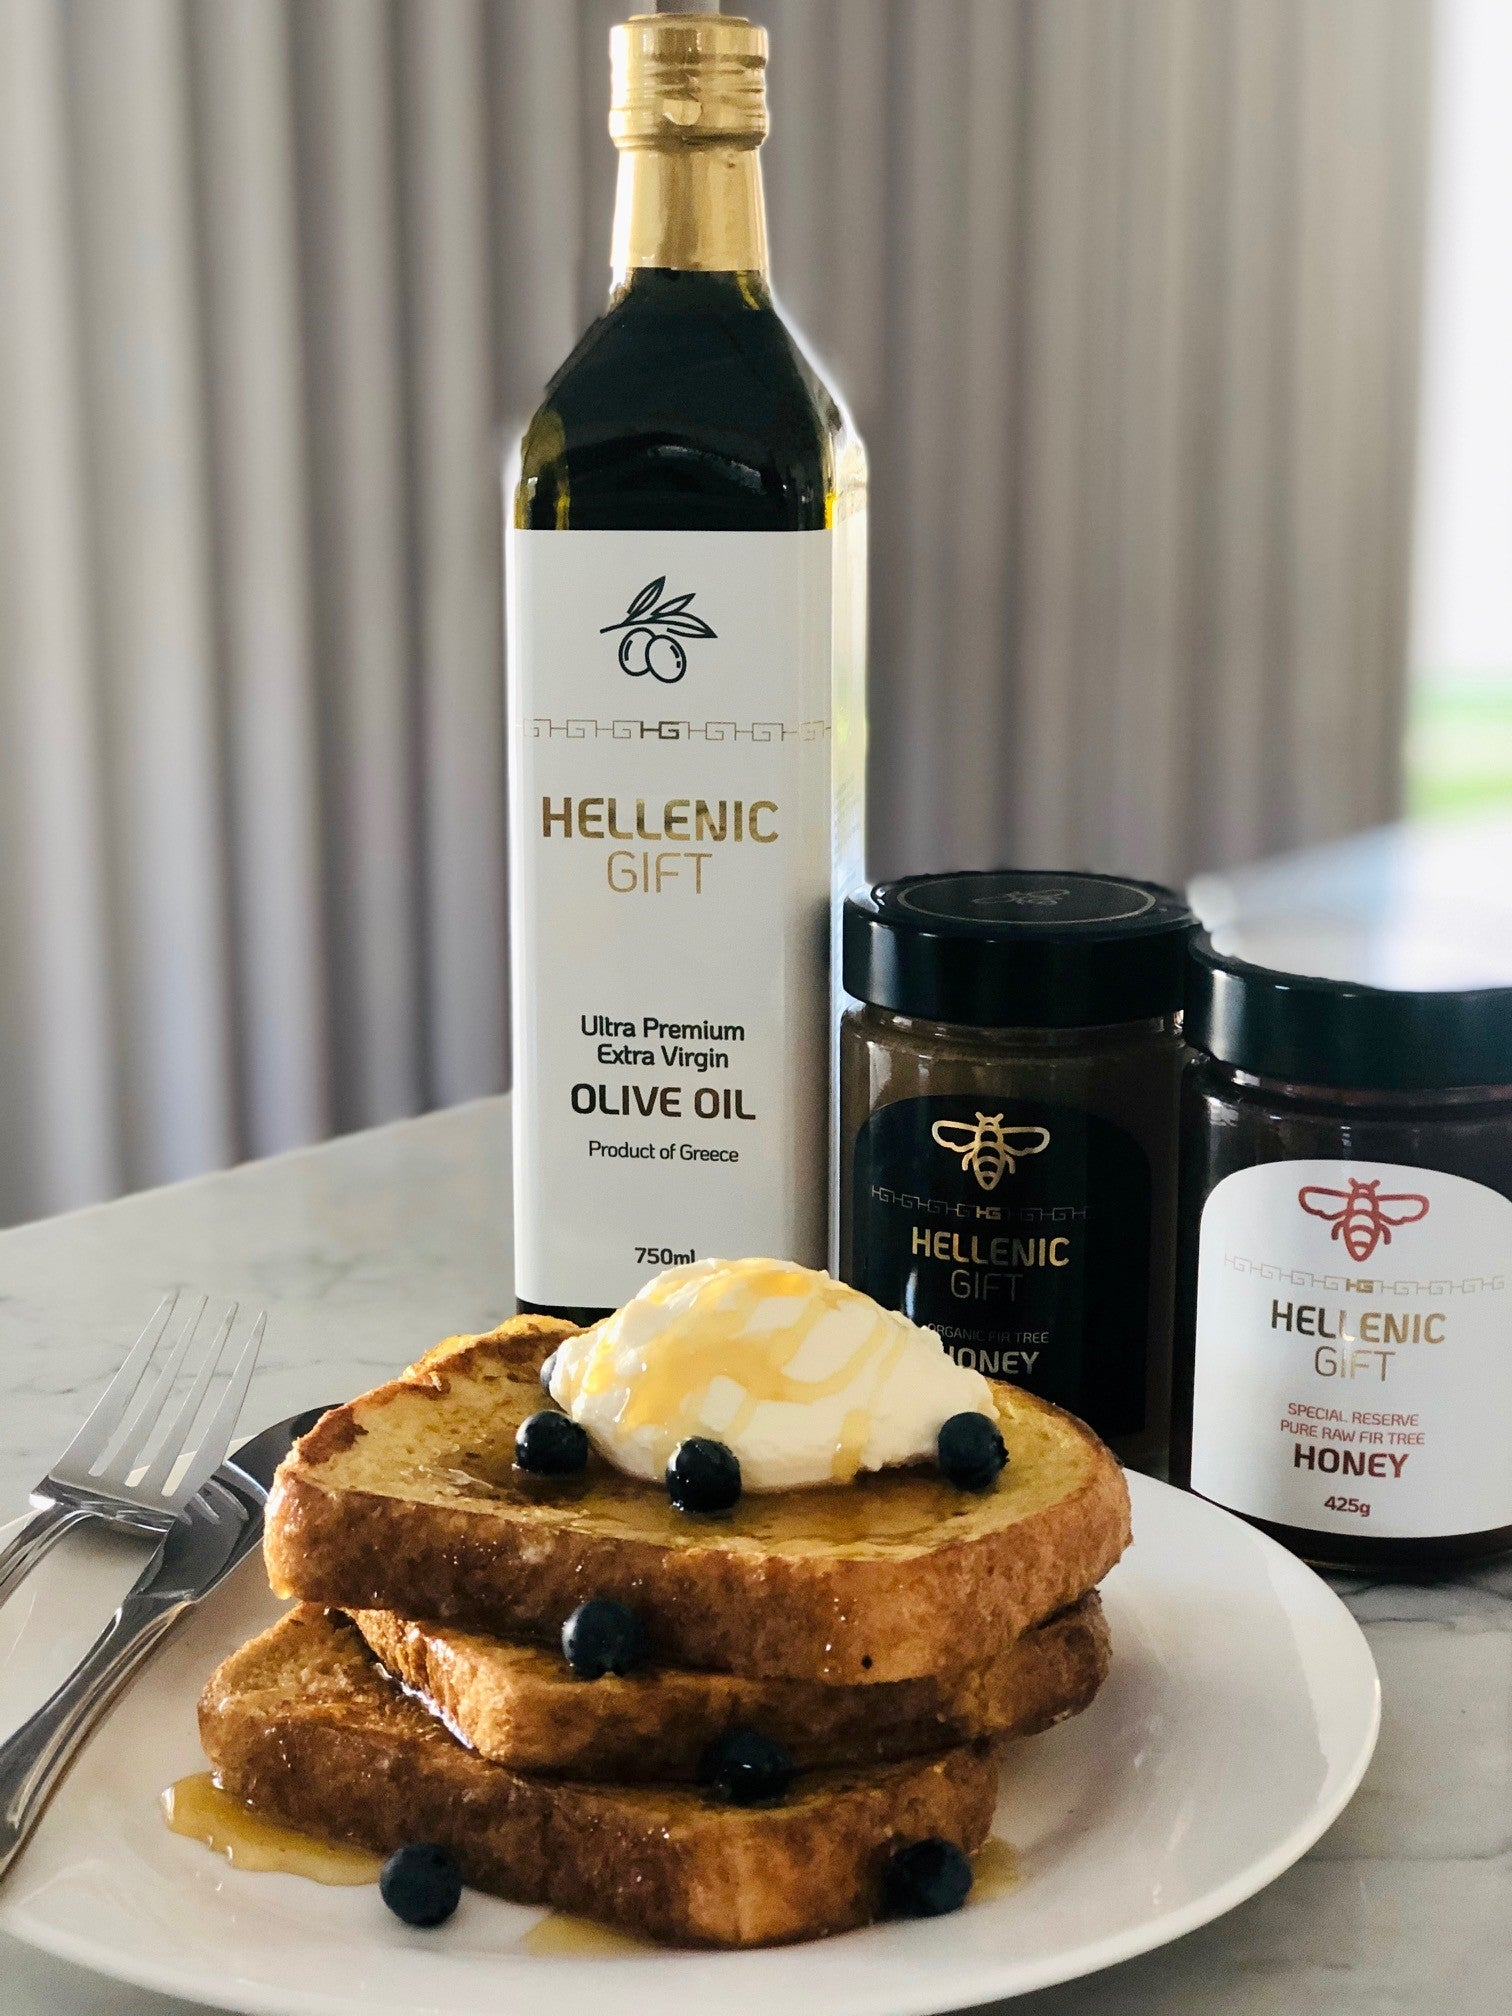 Load image into Gallery viewer, French Toast featuring Hellenic Gift Olive Oil and Honey